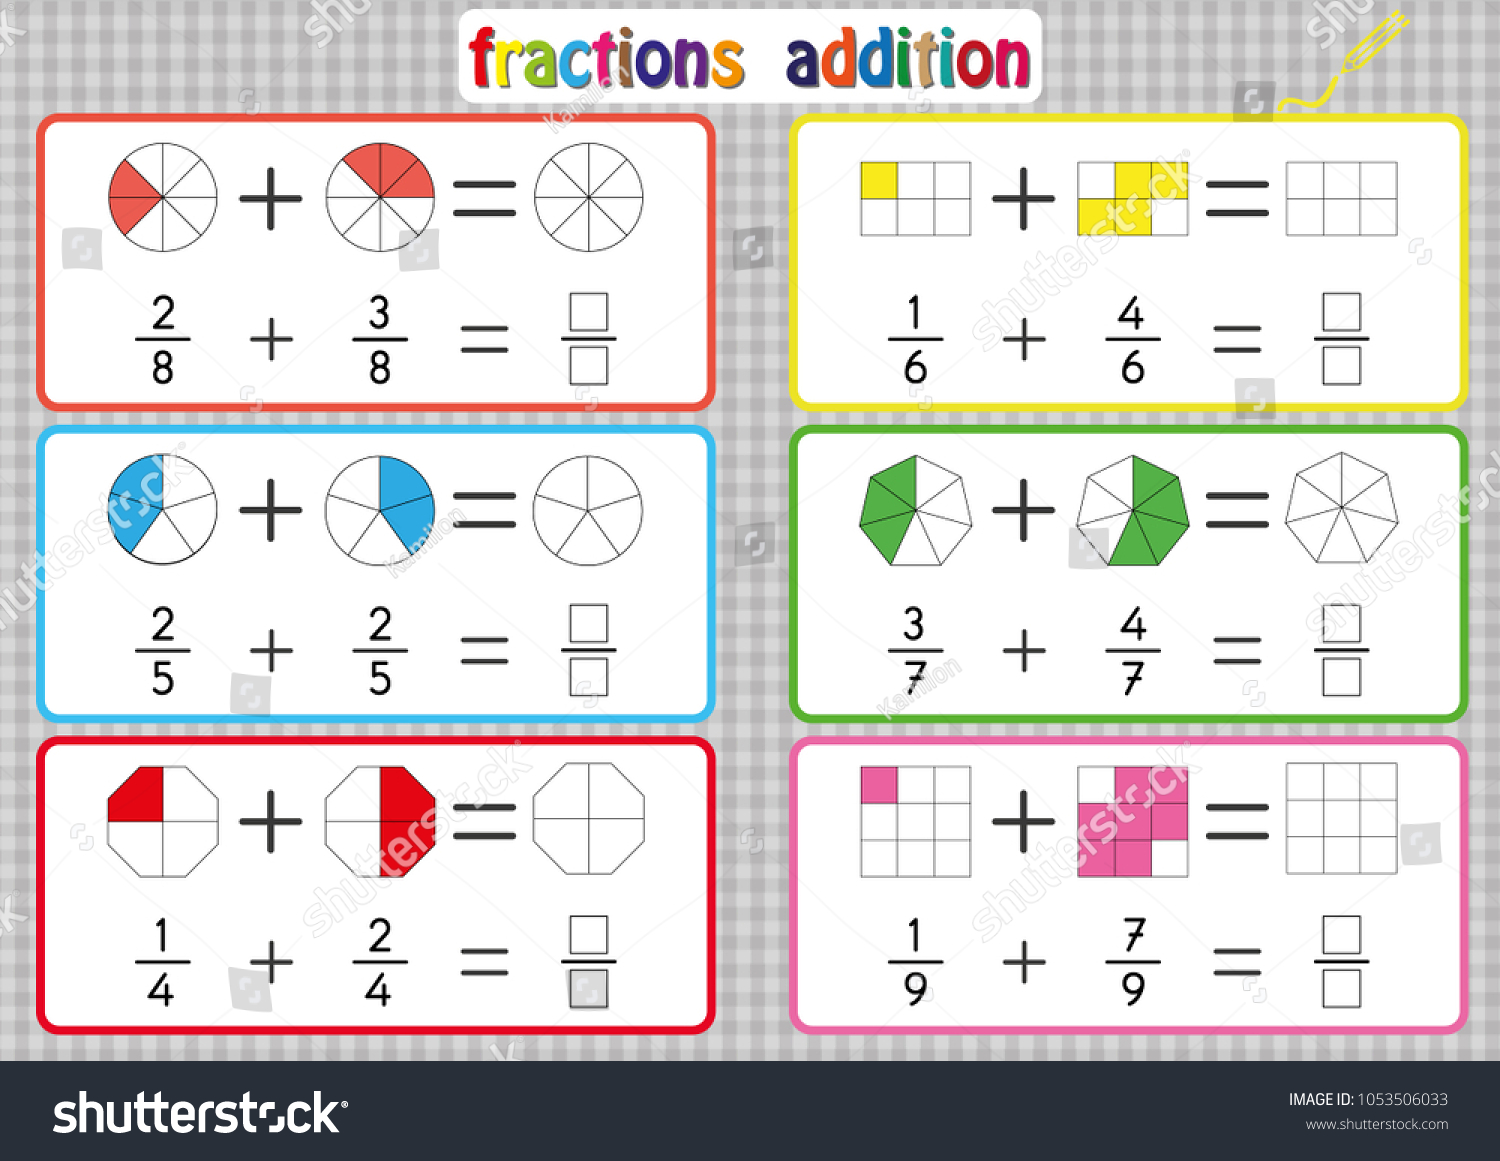 Fractions Addition Printable Fractions Worksheets Kids Stock Vector ...